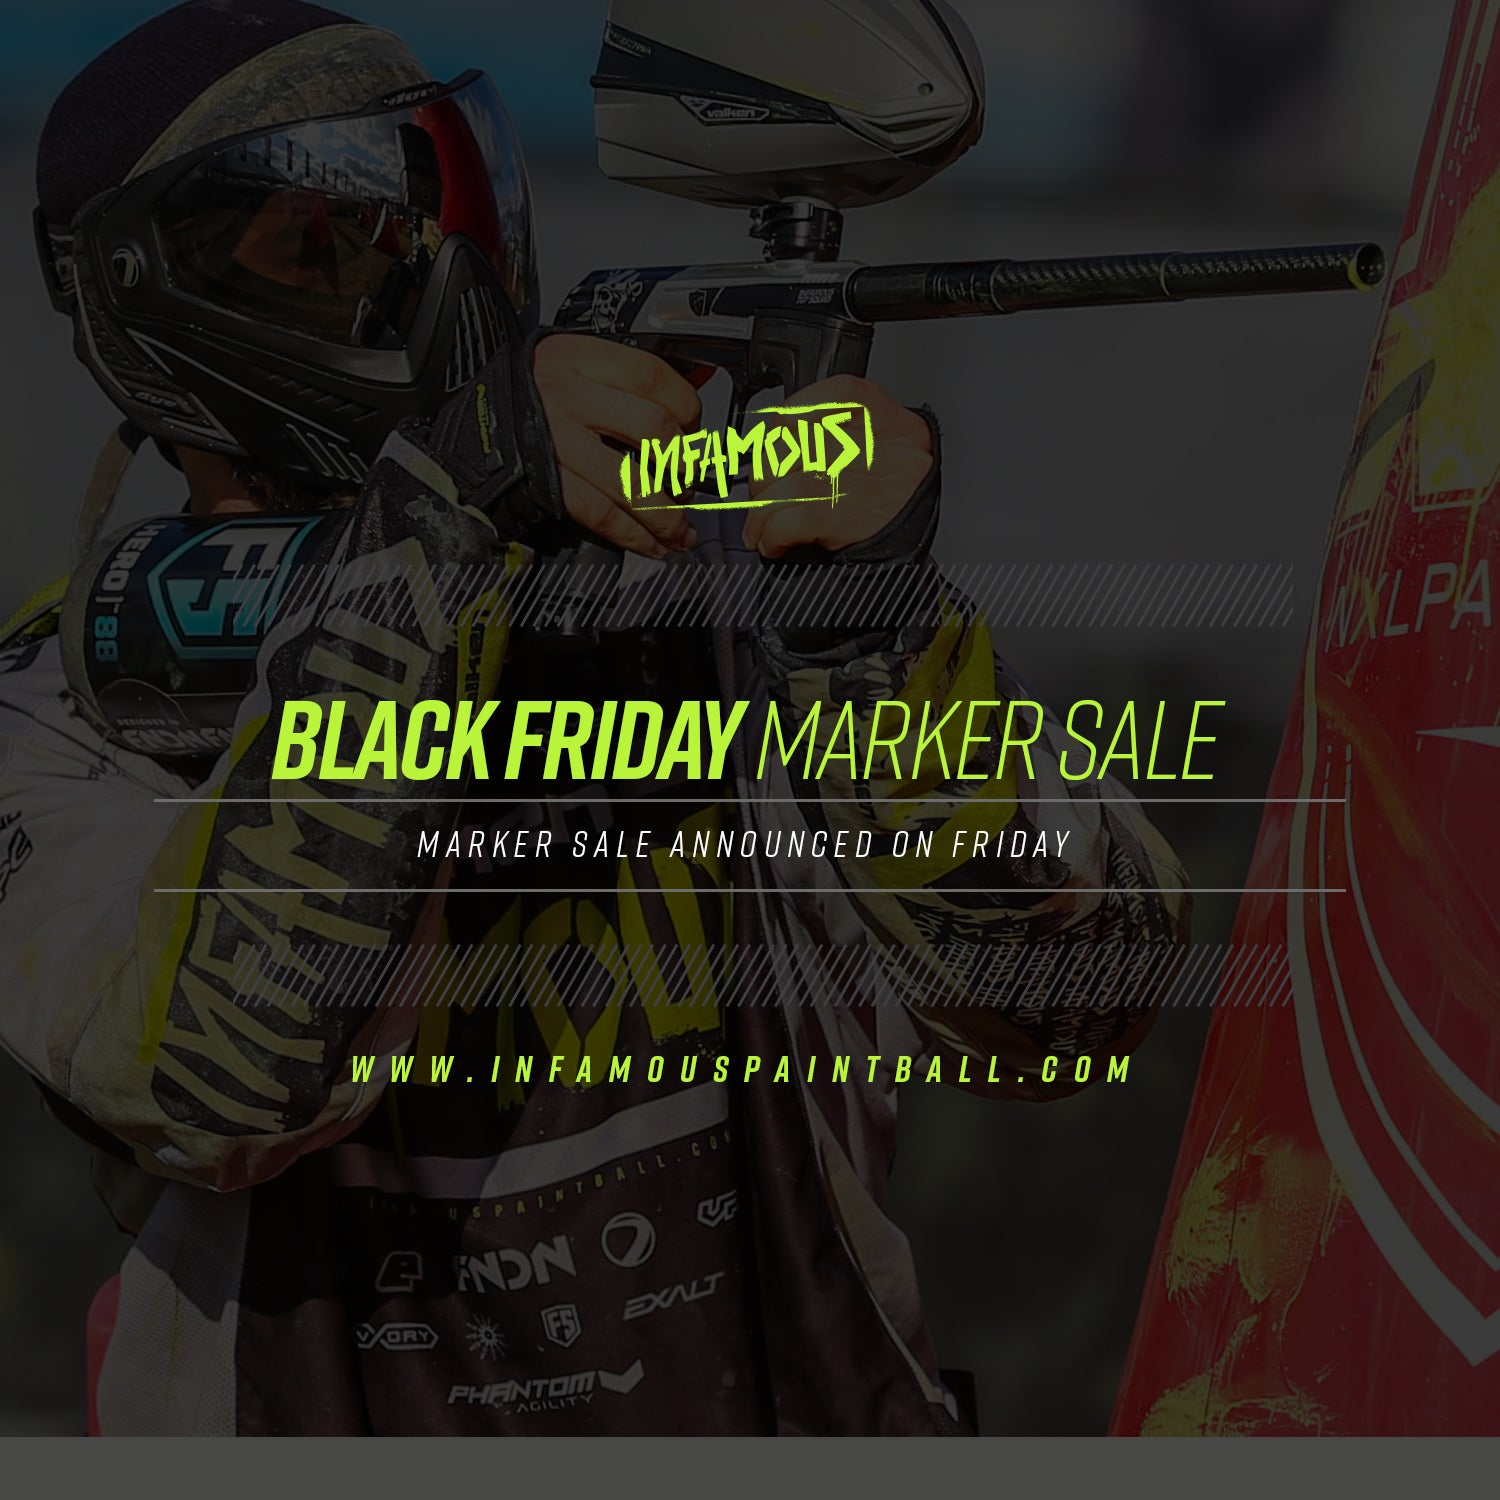 Black Friday Paintball Marker Sale - Infamous